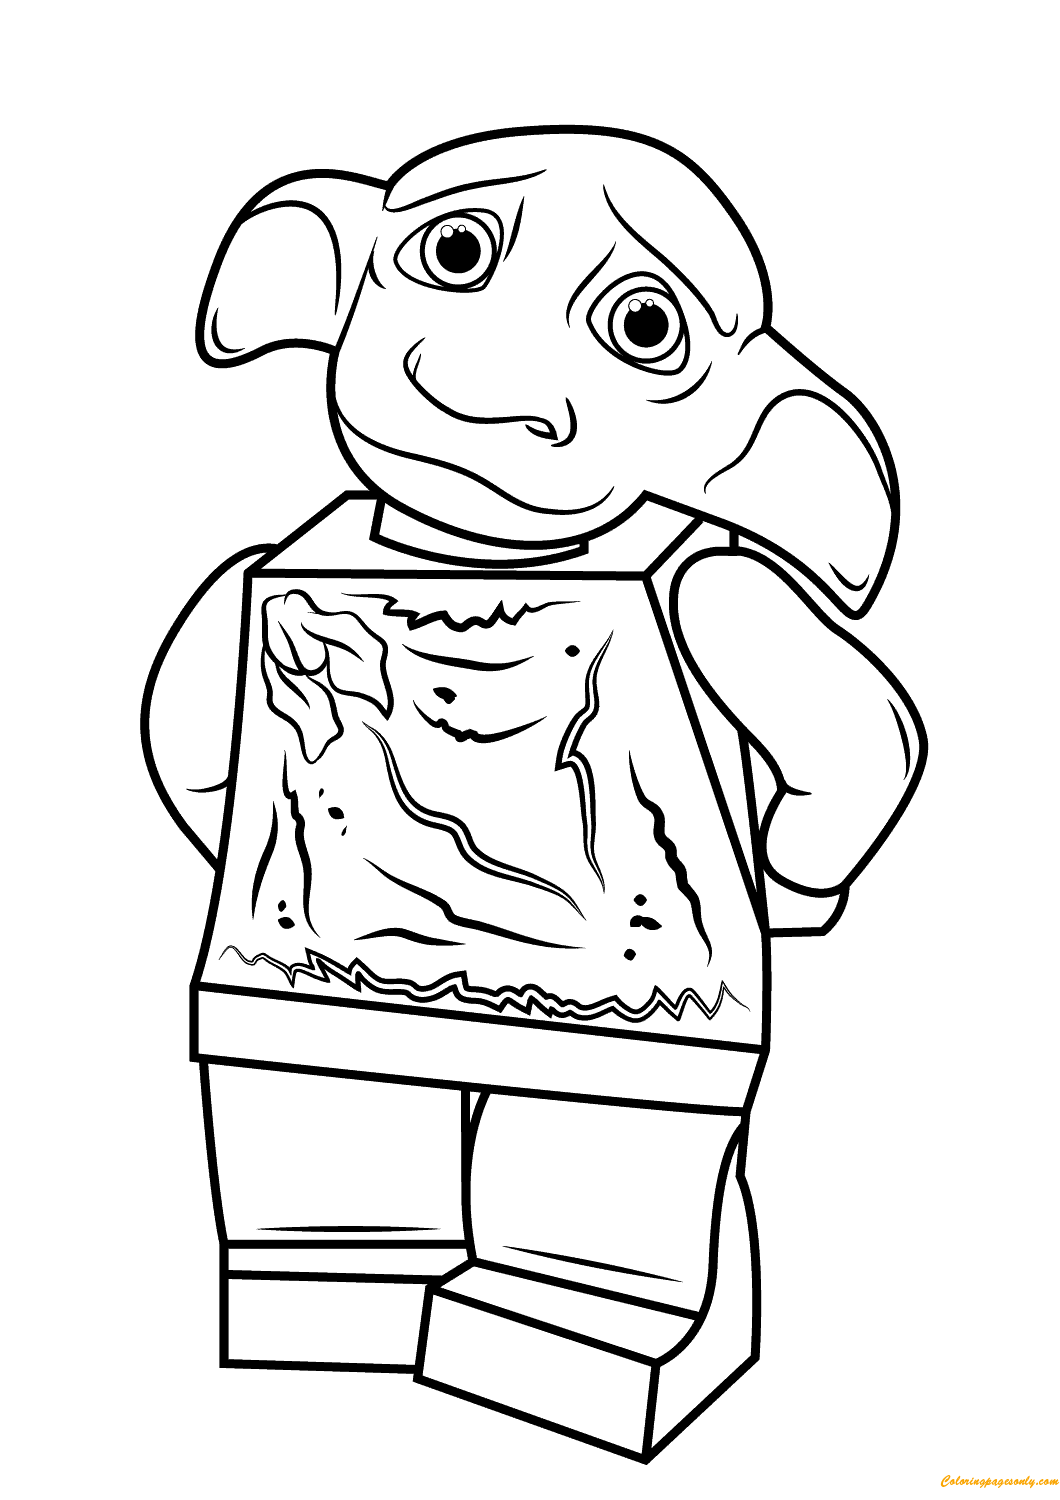 Lego Dobby Harry Potter Coloring Page